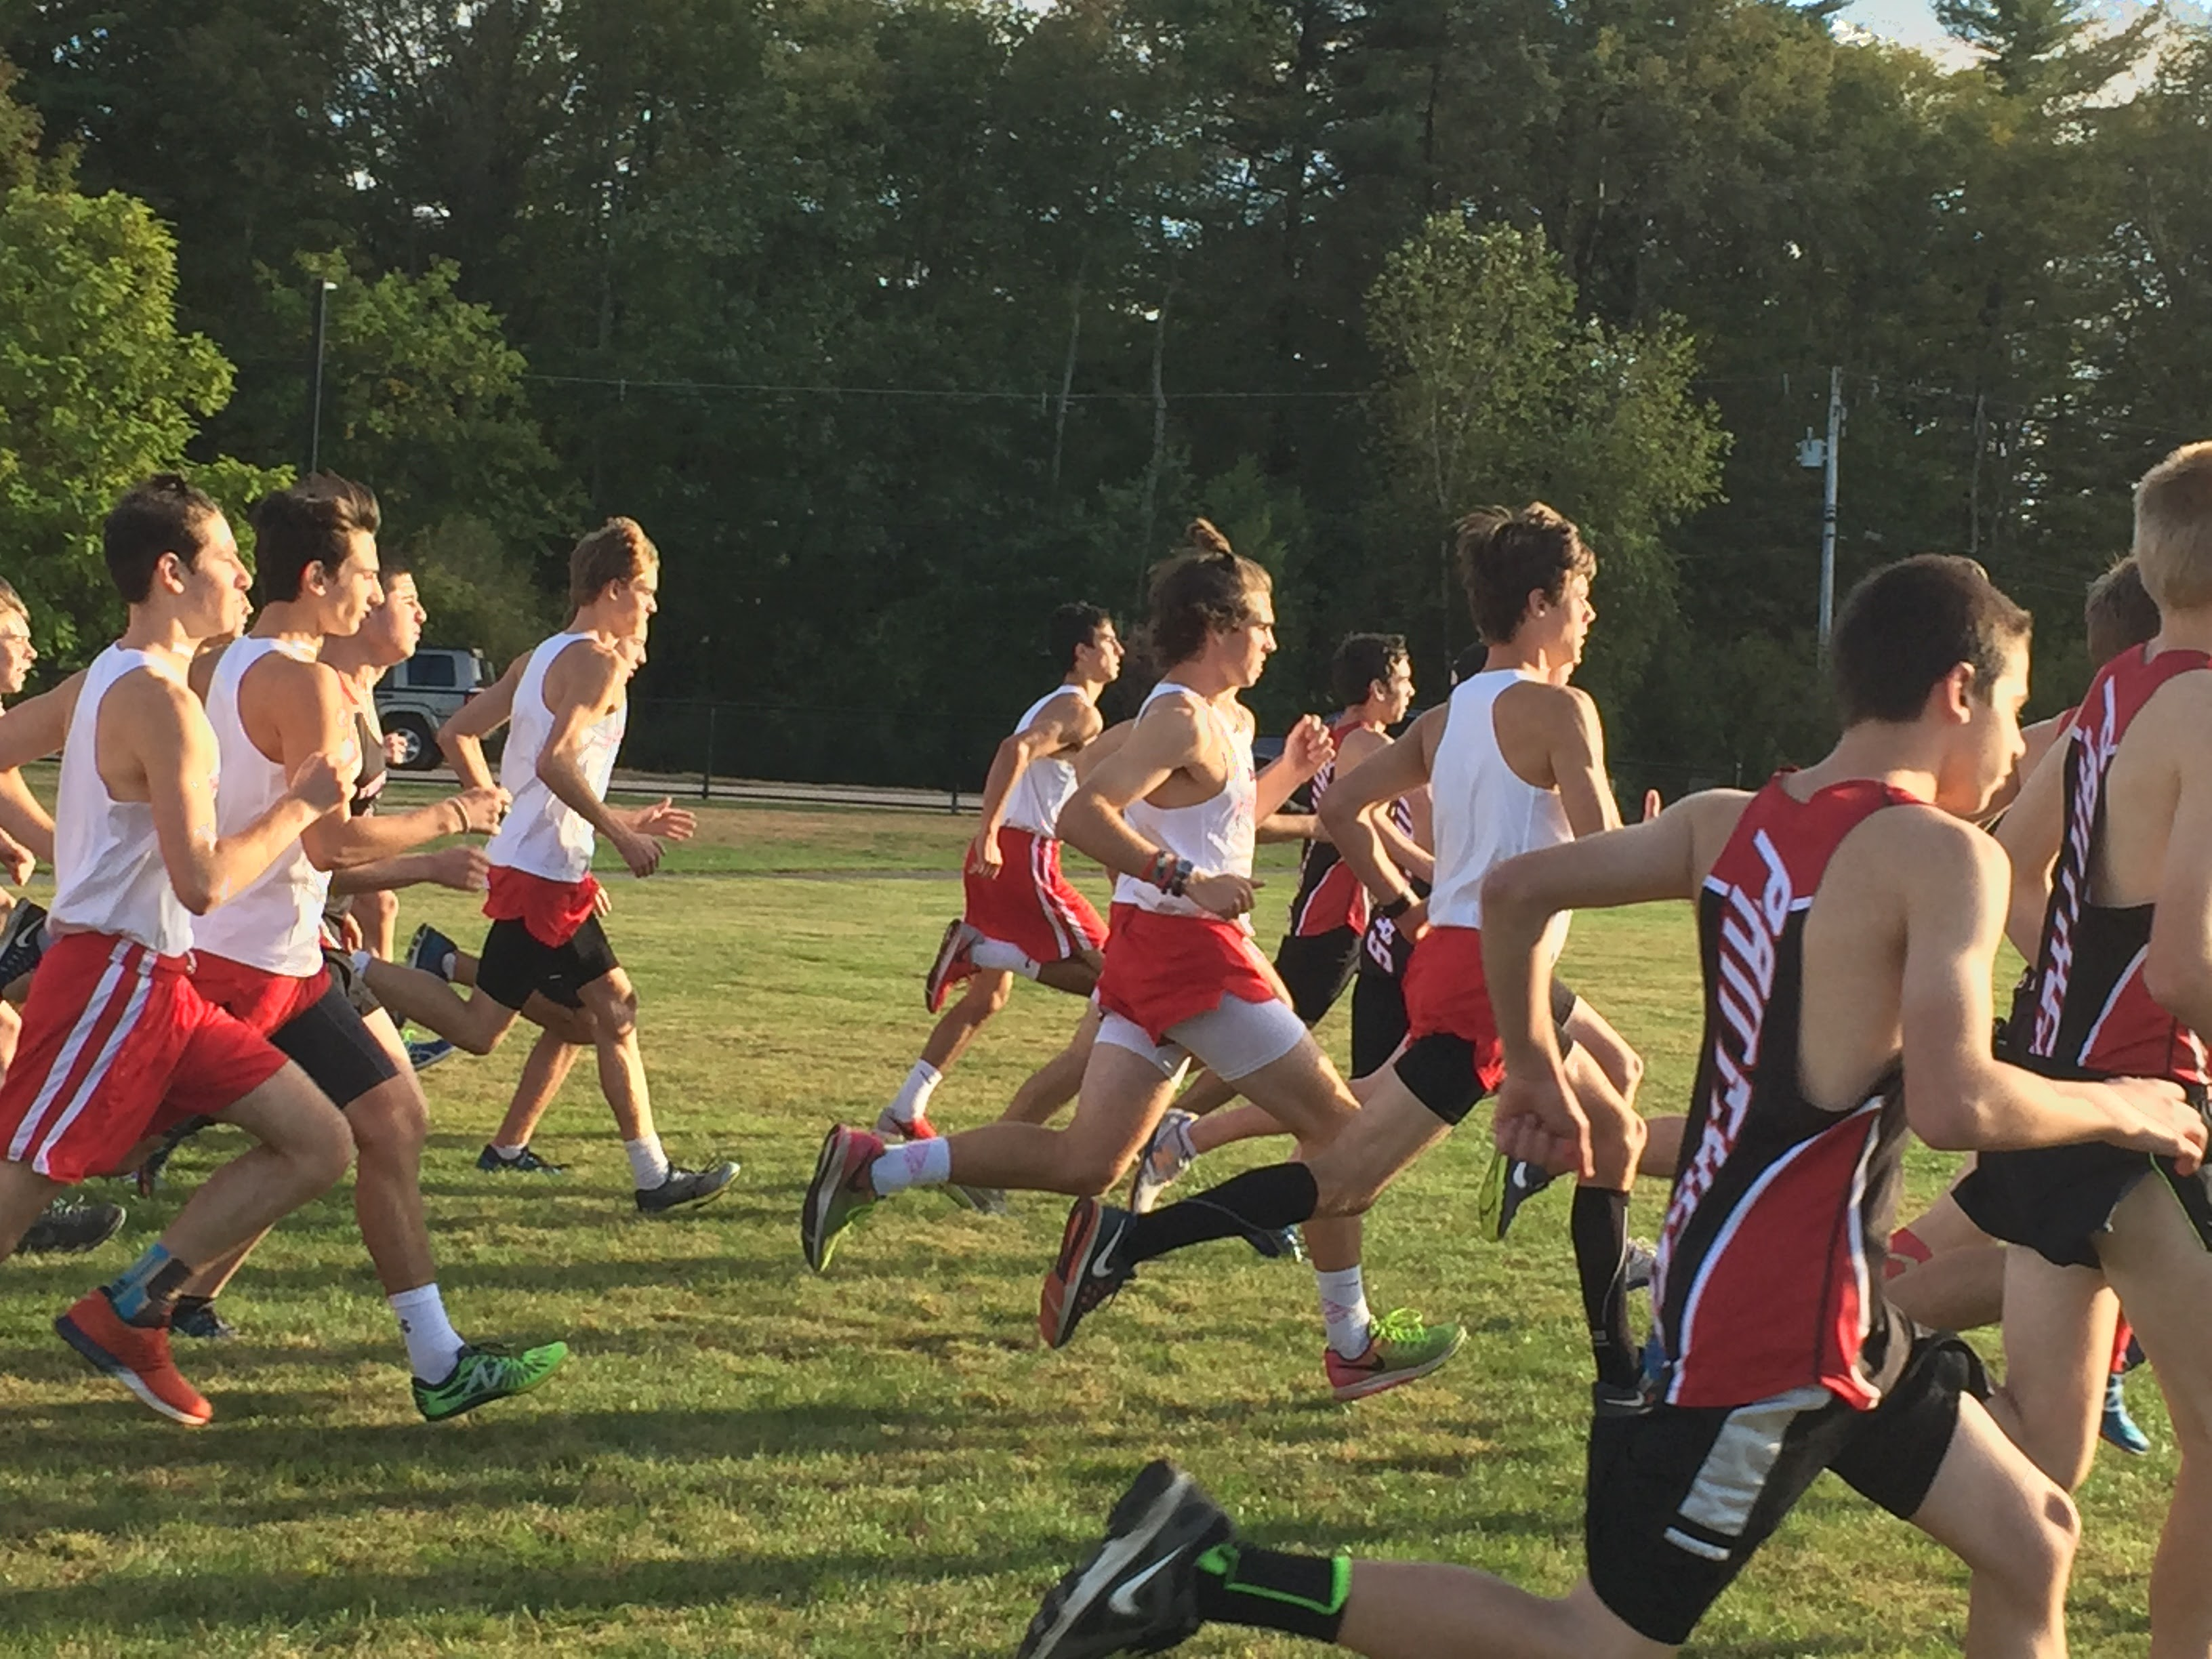 The beginnings of the boys race goes off with a bang as they jump off the starting line.